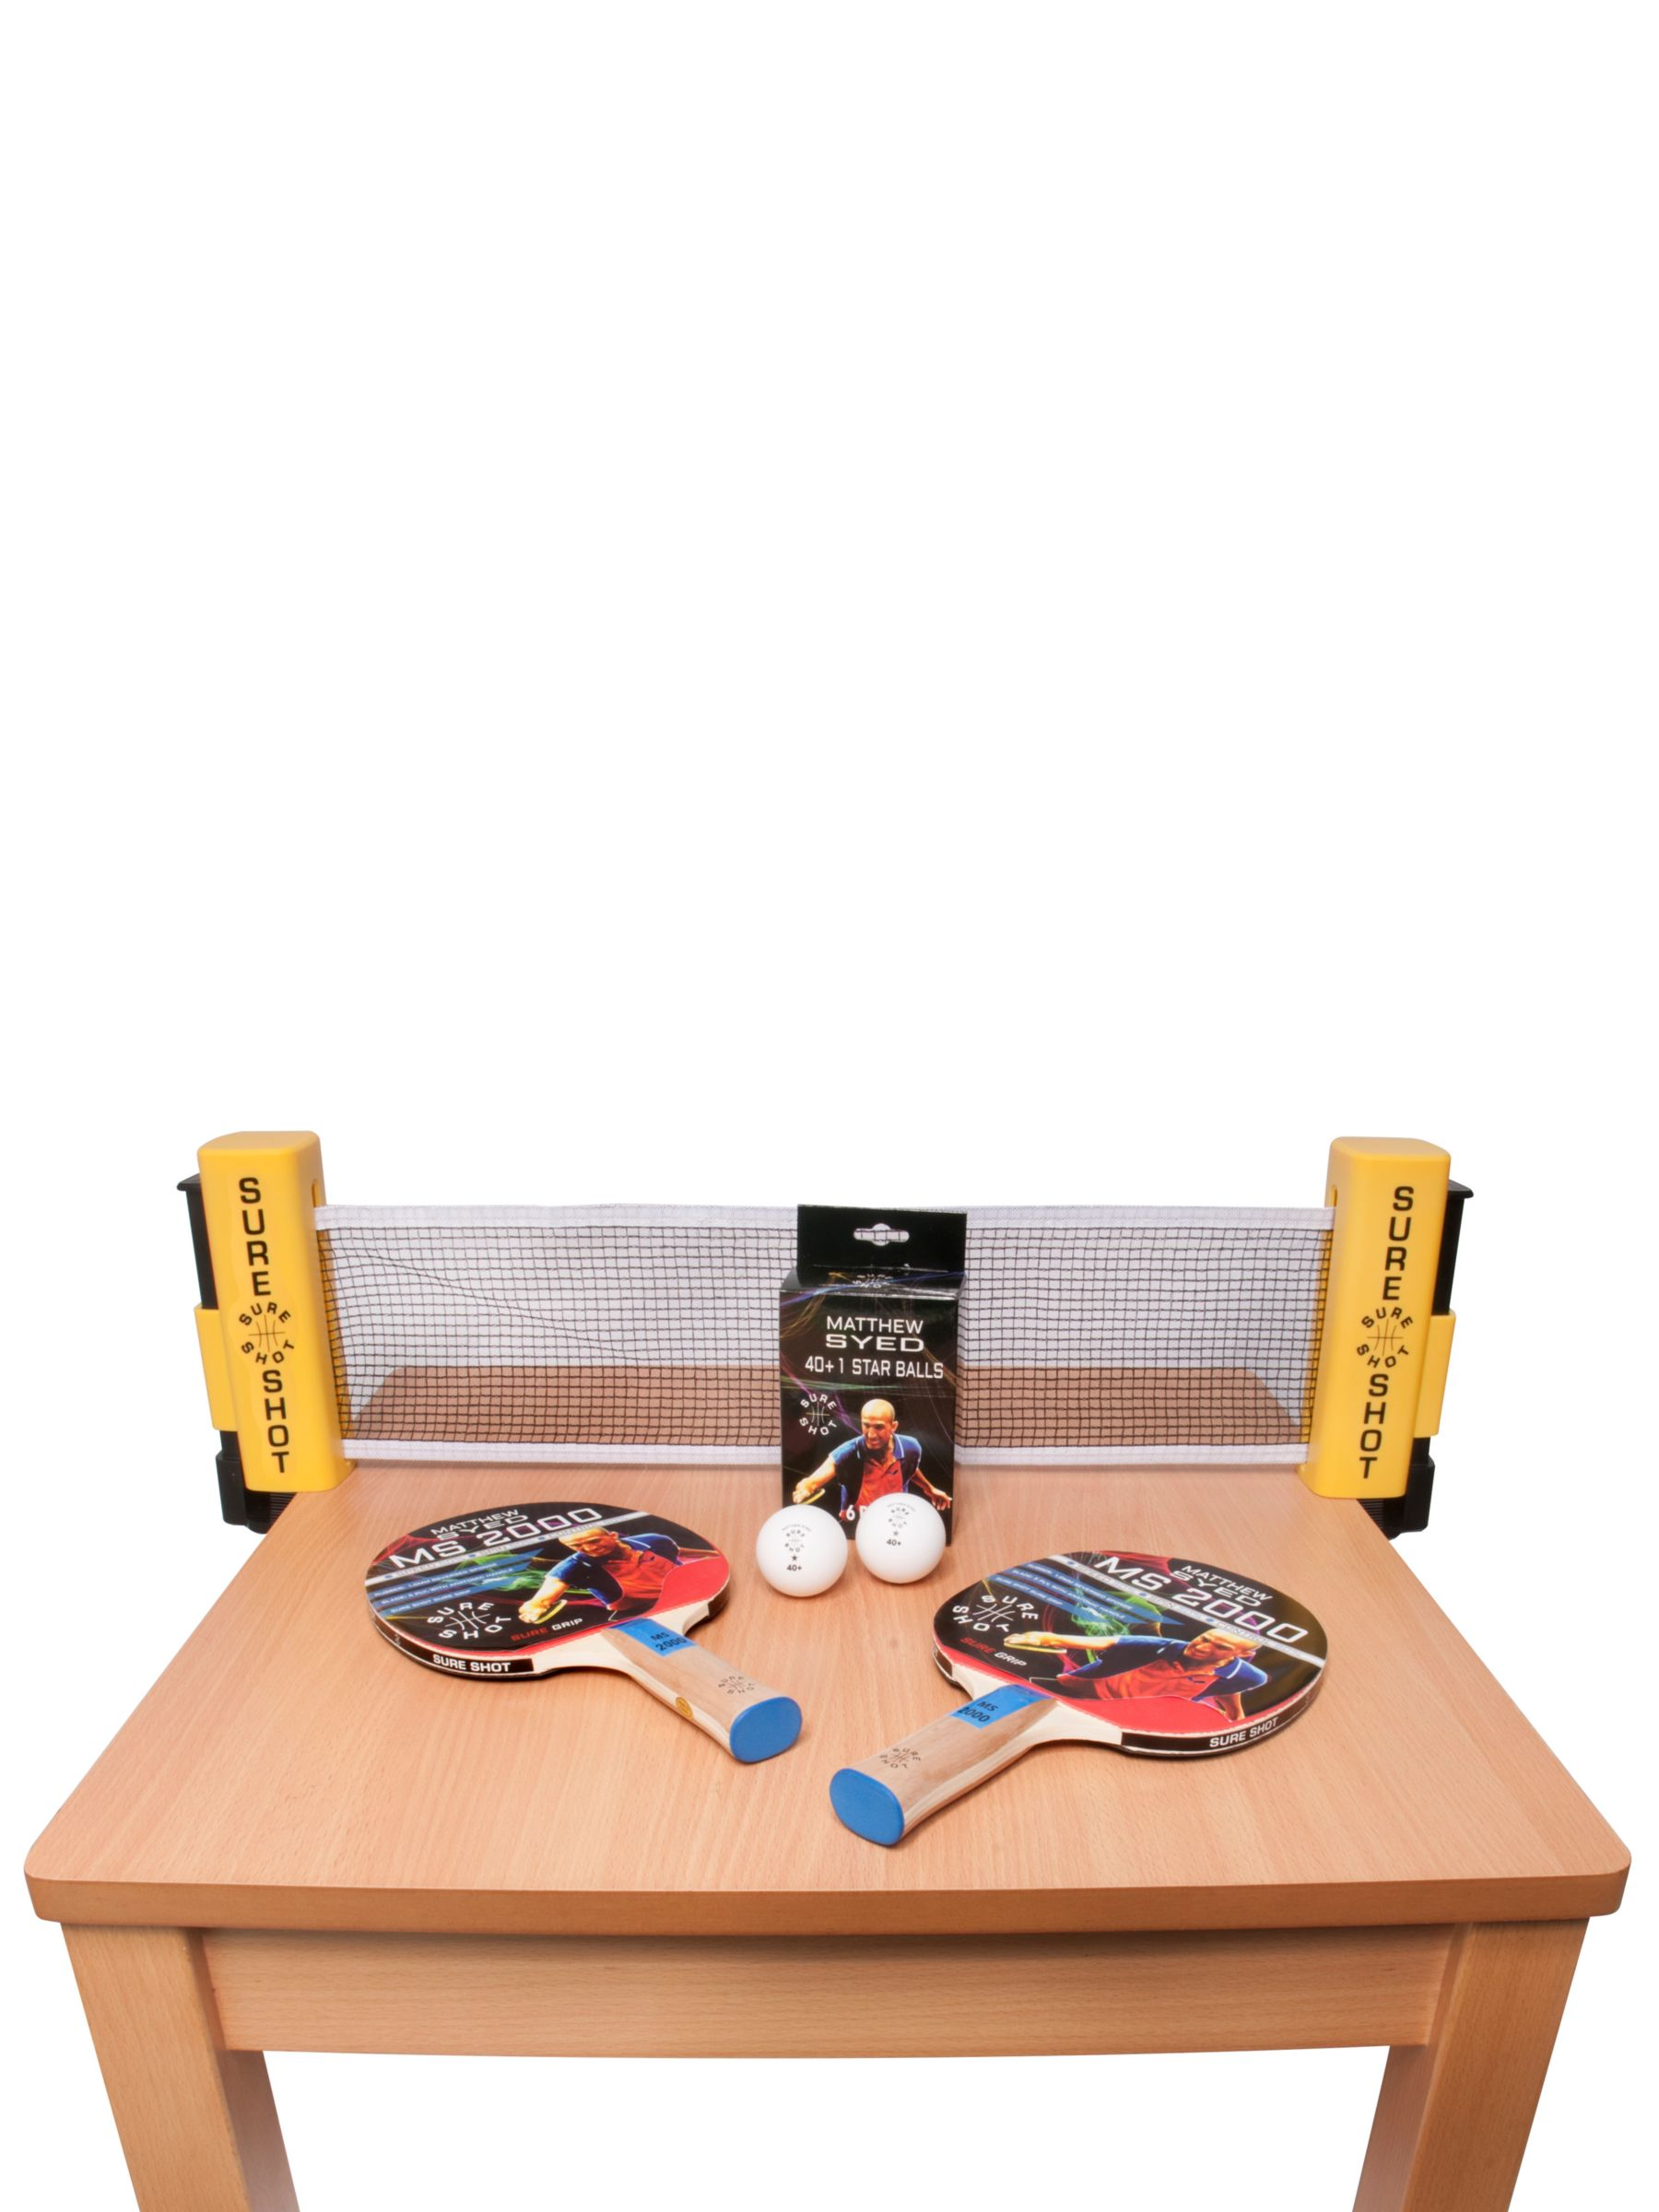 Butterfly Sure Shot Matthew Syed Table Tennis Set